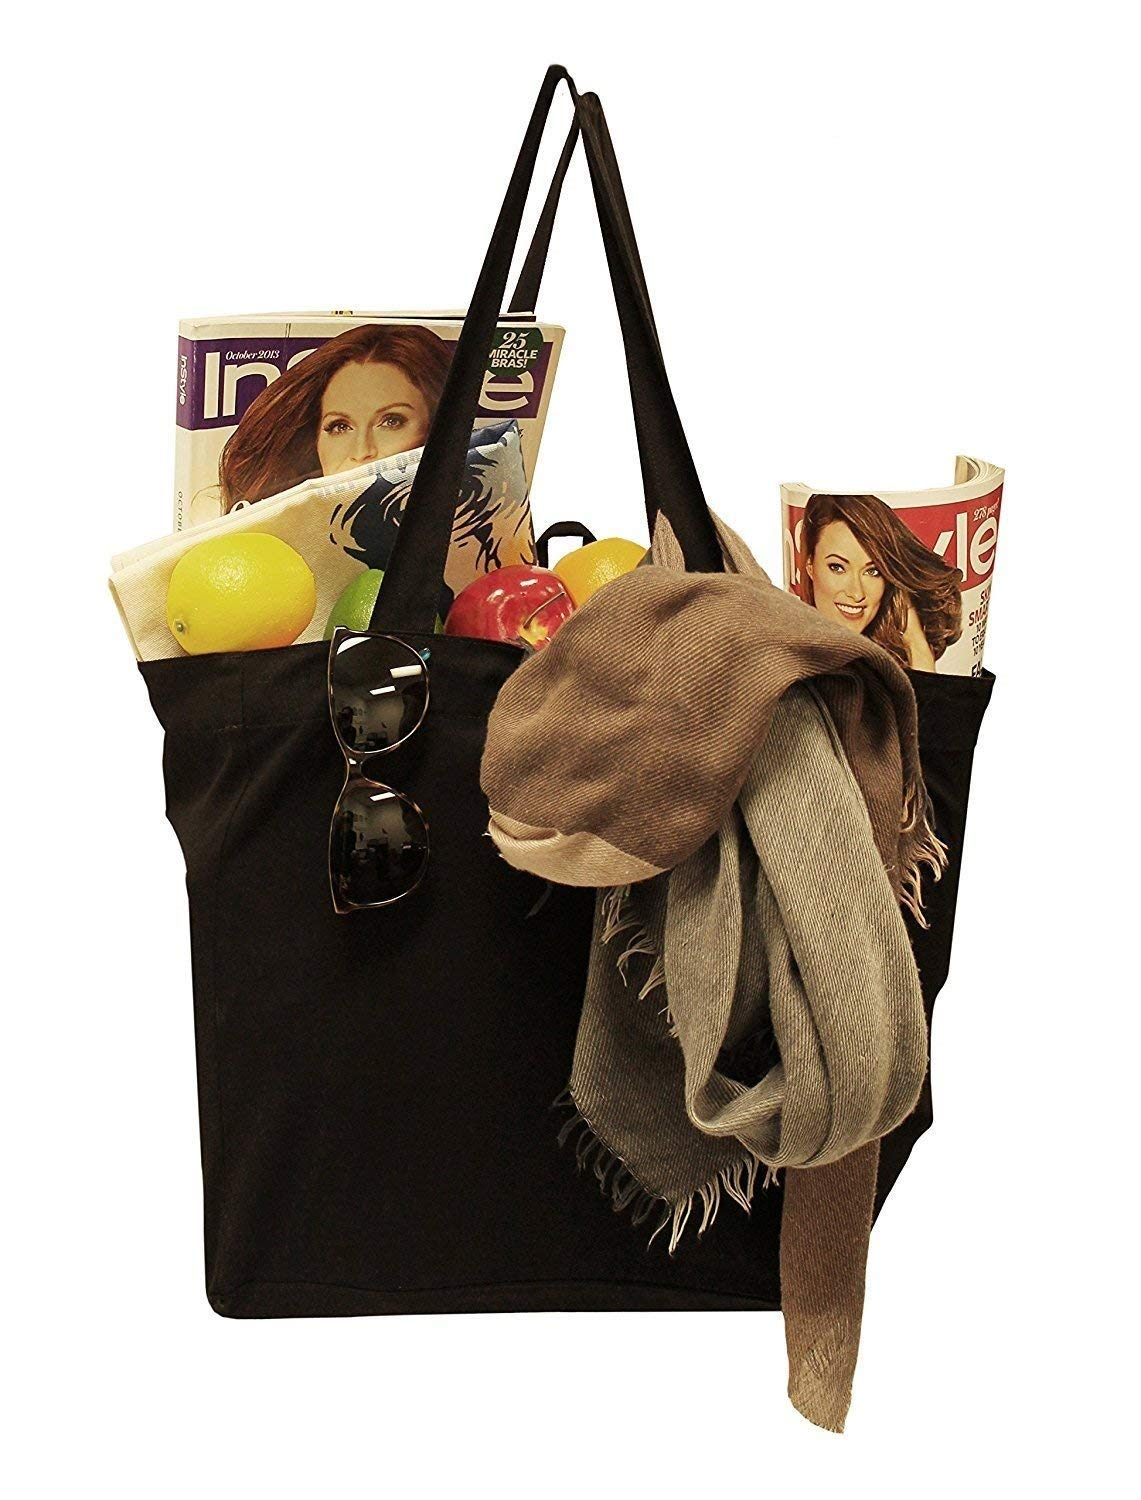 197b16e456cb Amazon.com  Earthwise Reusable Grocery Bag Shopping Tote 100% Natural  Cotton Canvas in Black (Set of 3) (Black)  Kitchen   Dining